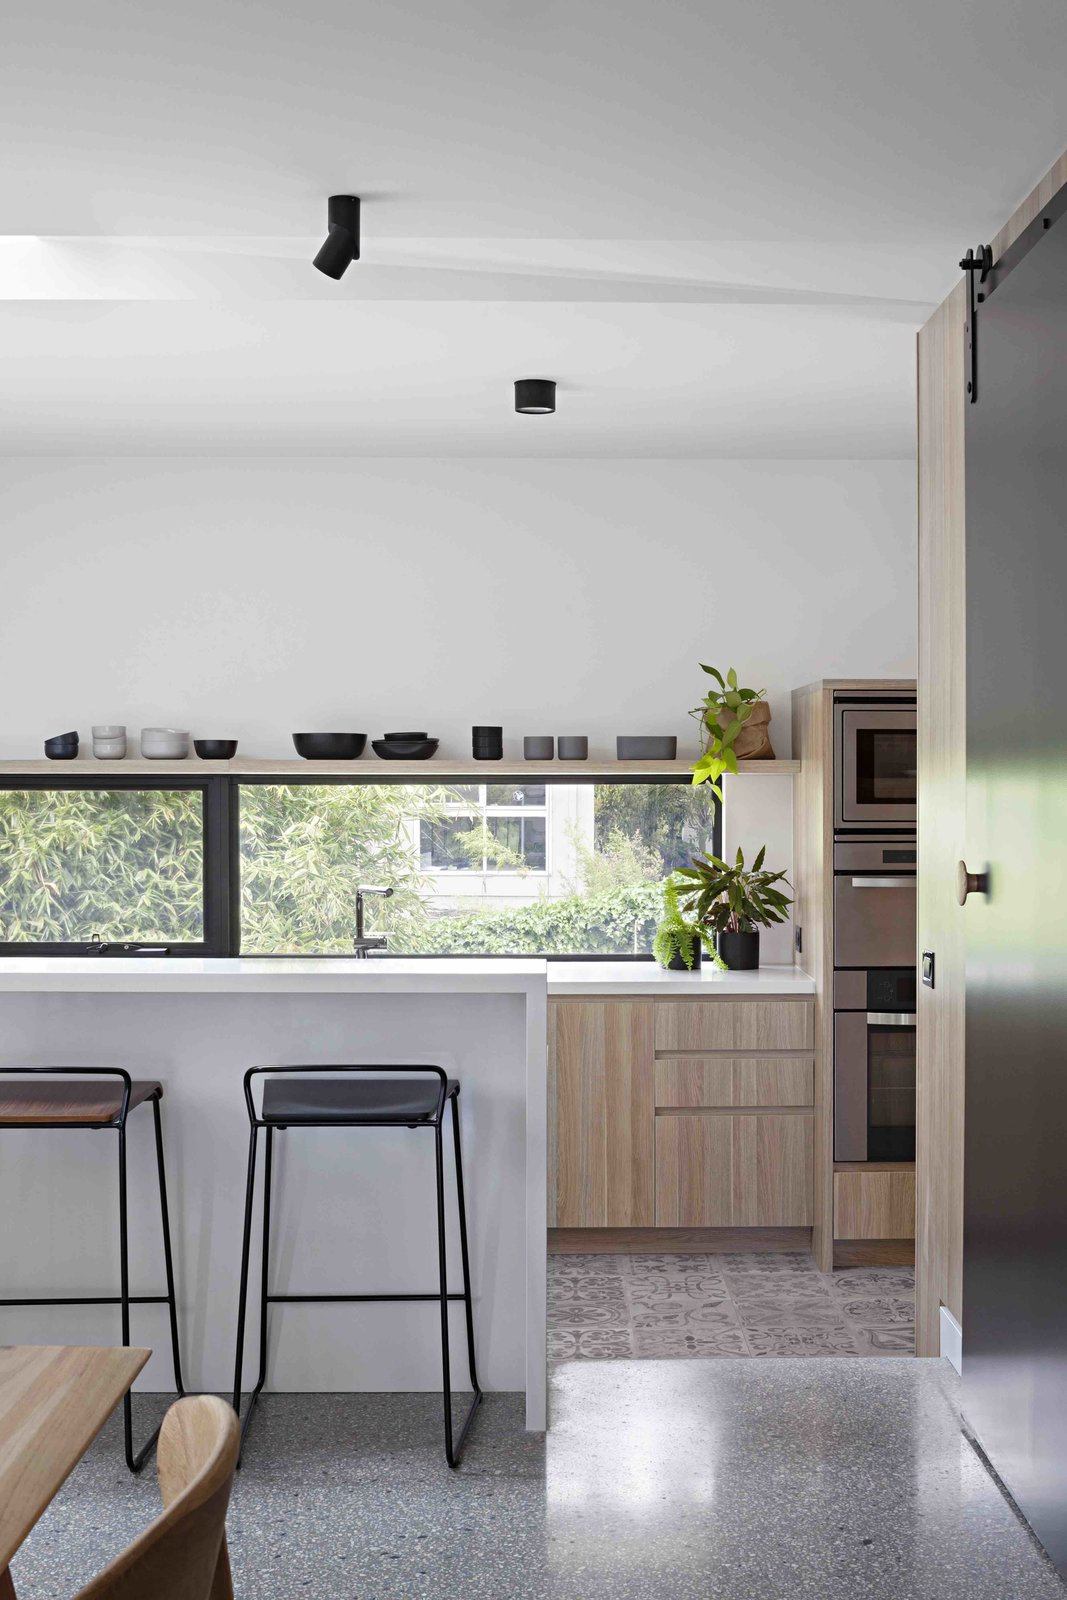 Photo 7 of 17 in A Remodel Turns a Dark and Choppy House in Melbourne Into a Bright, Flexible Family Home